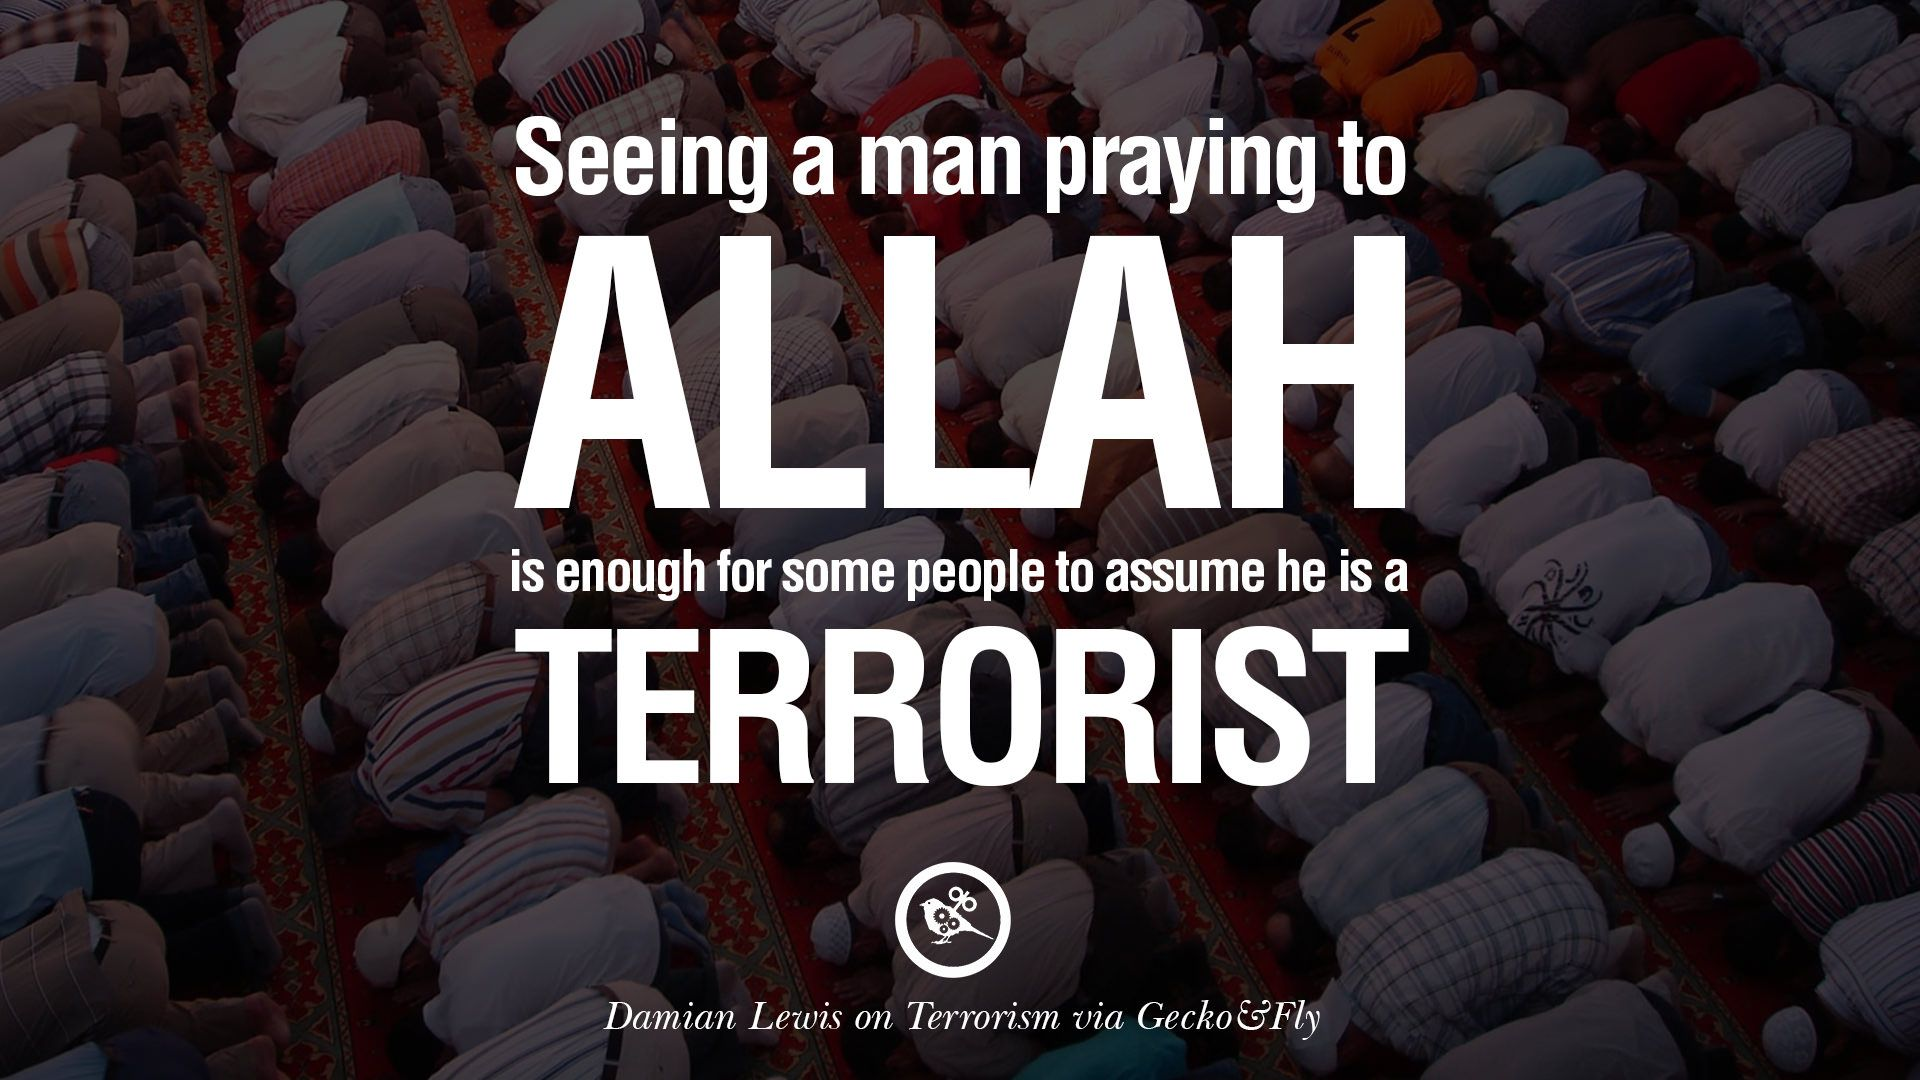 allah god of terrorists essay Jihad against all that prevents muslims from servitude to god (allah), people from knowing islam, defense of a muslim society (country), retribution against tyranny, and/or when a muslim is removed from their homeland by force - physical jihad or an armed struggle.